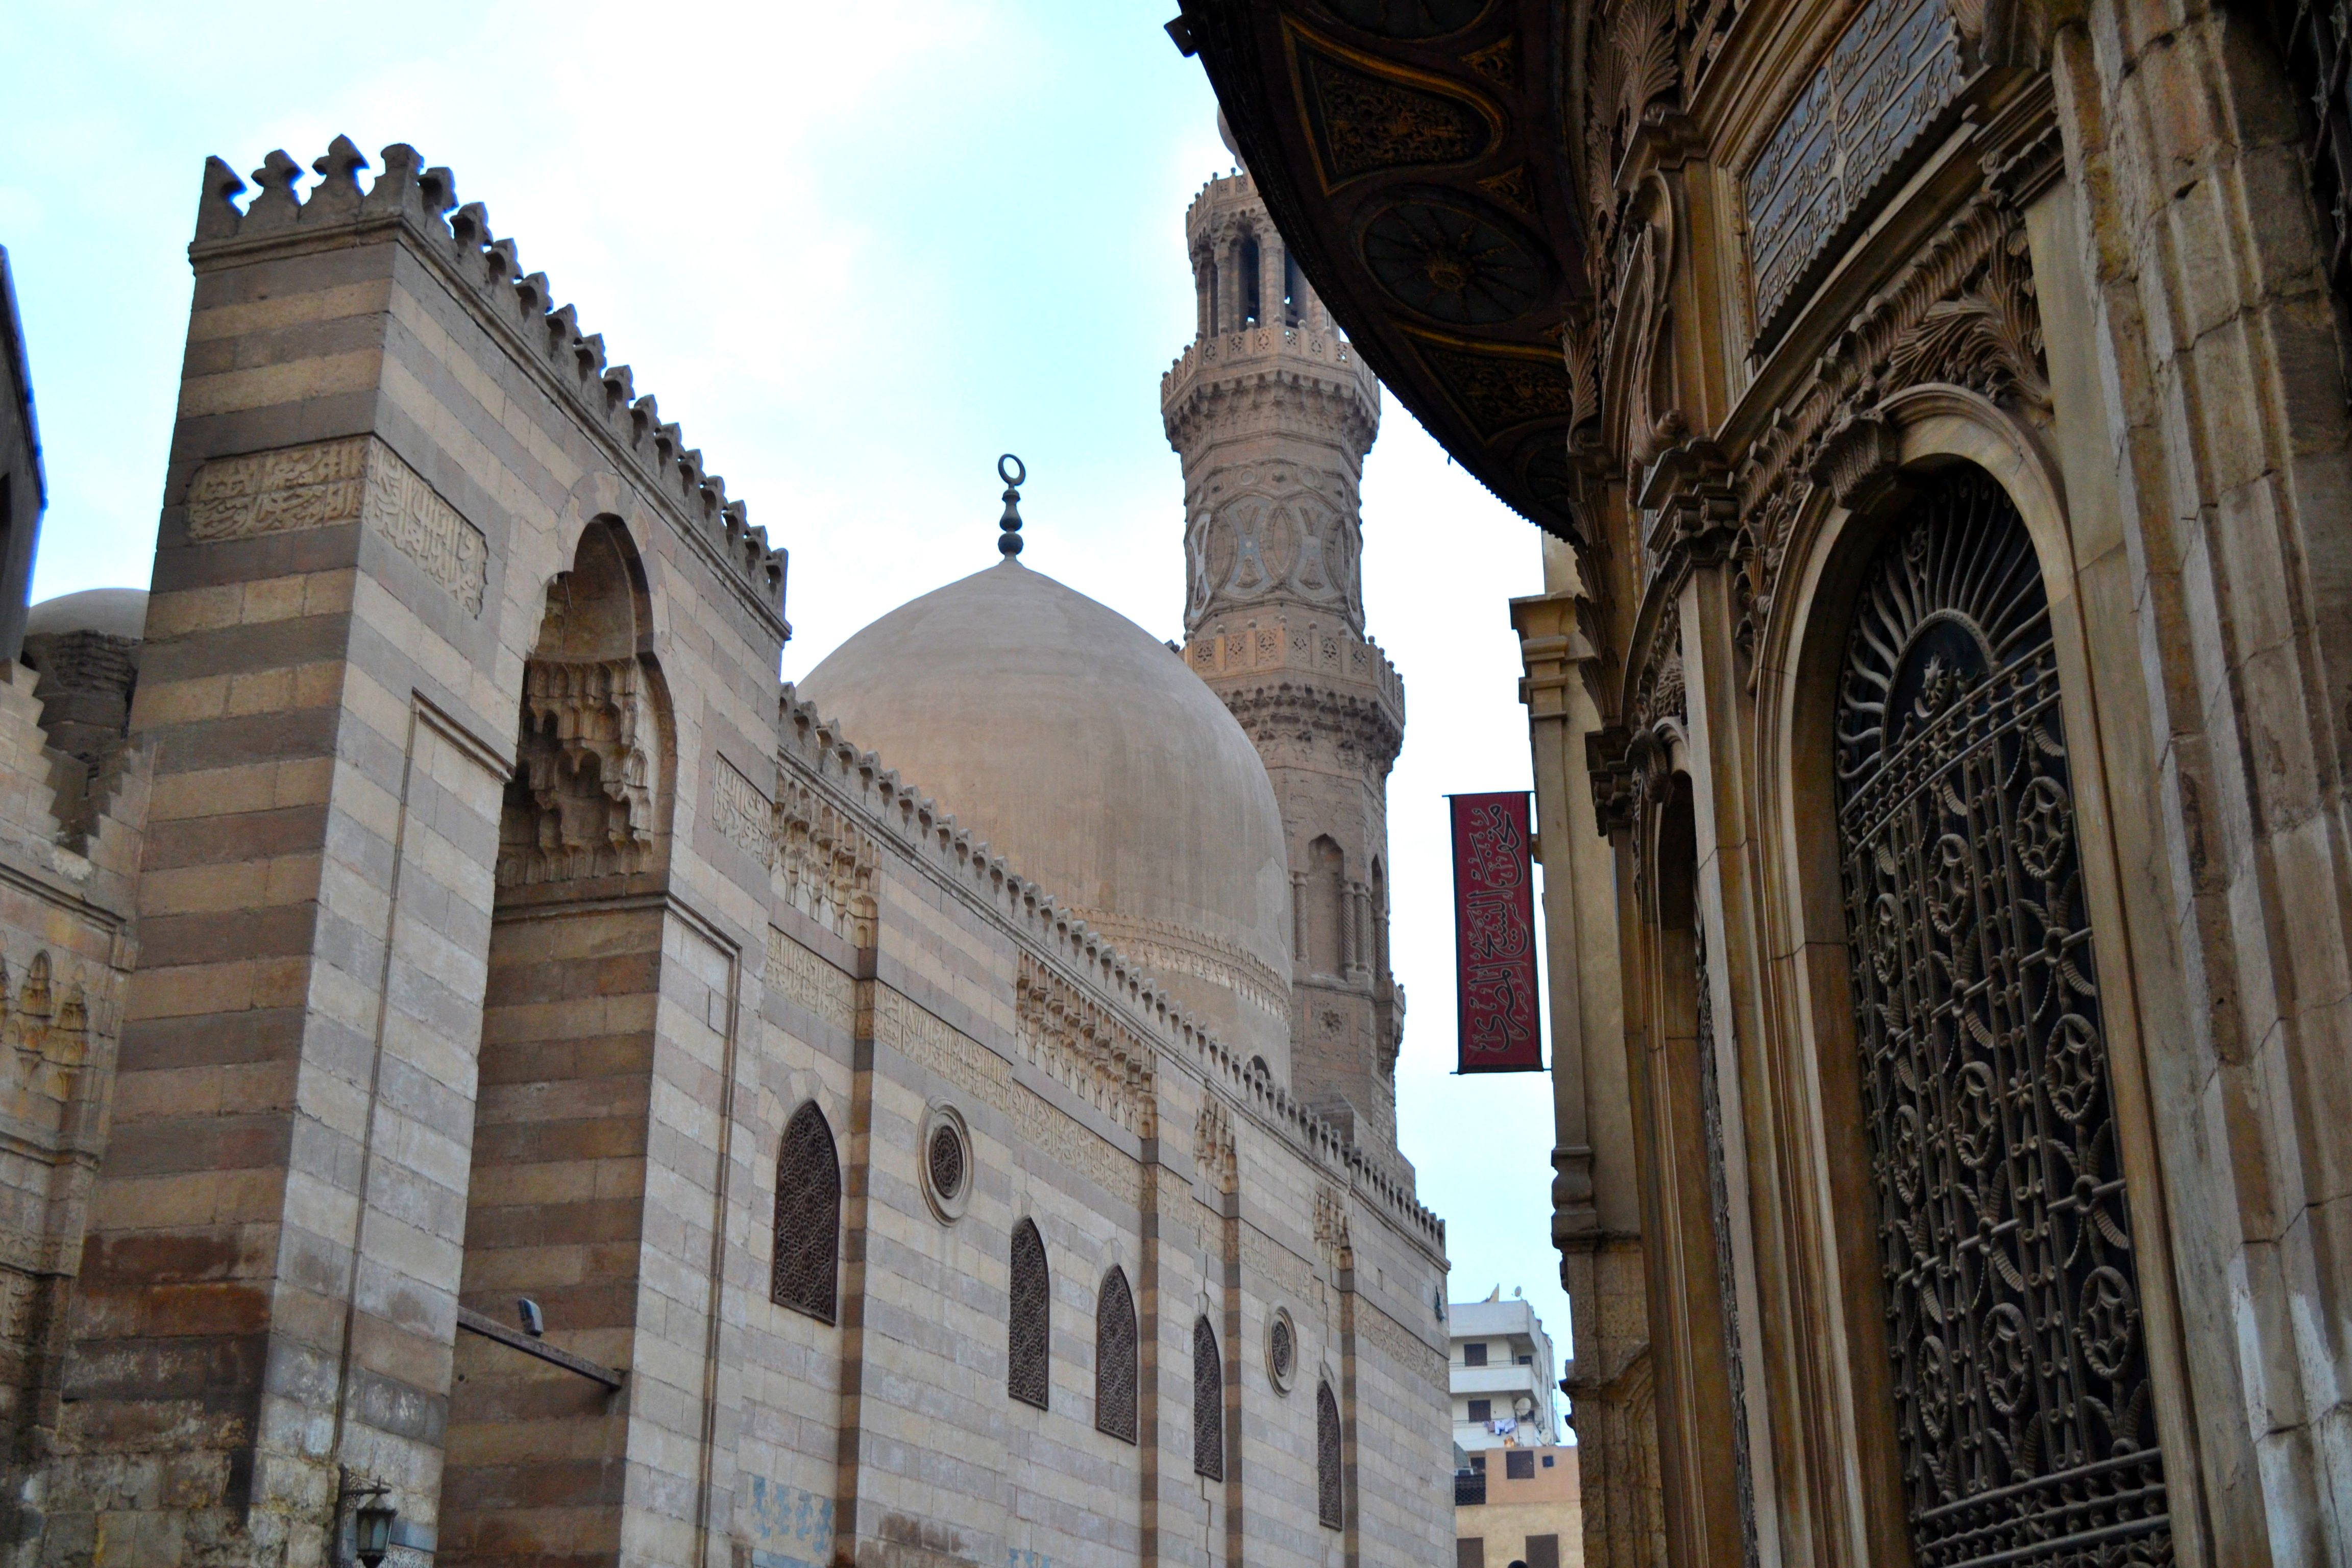 This ottoman period mosque is located across the 14th-century madrasa